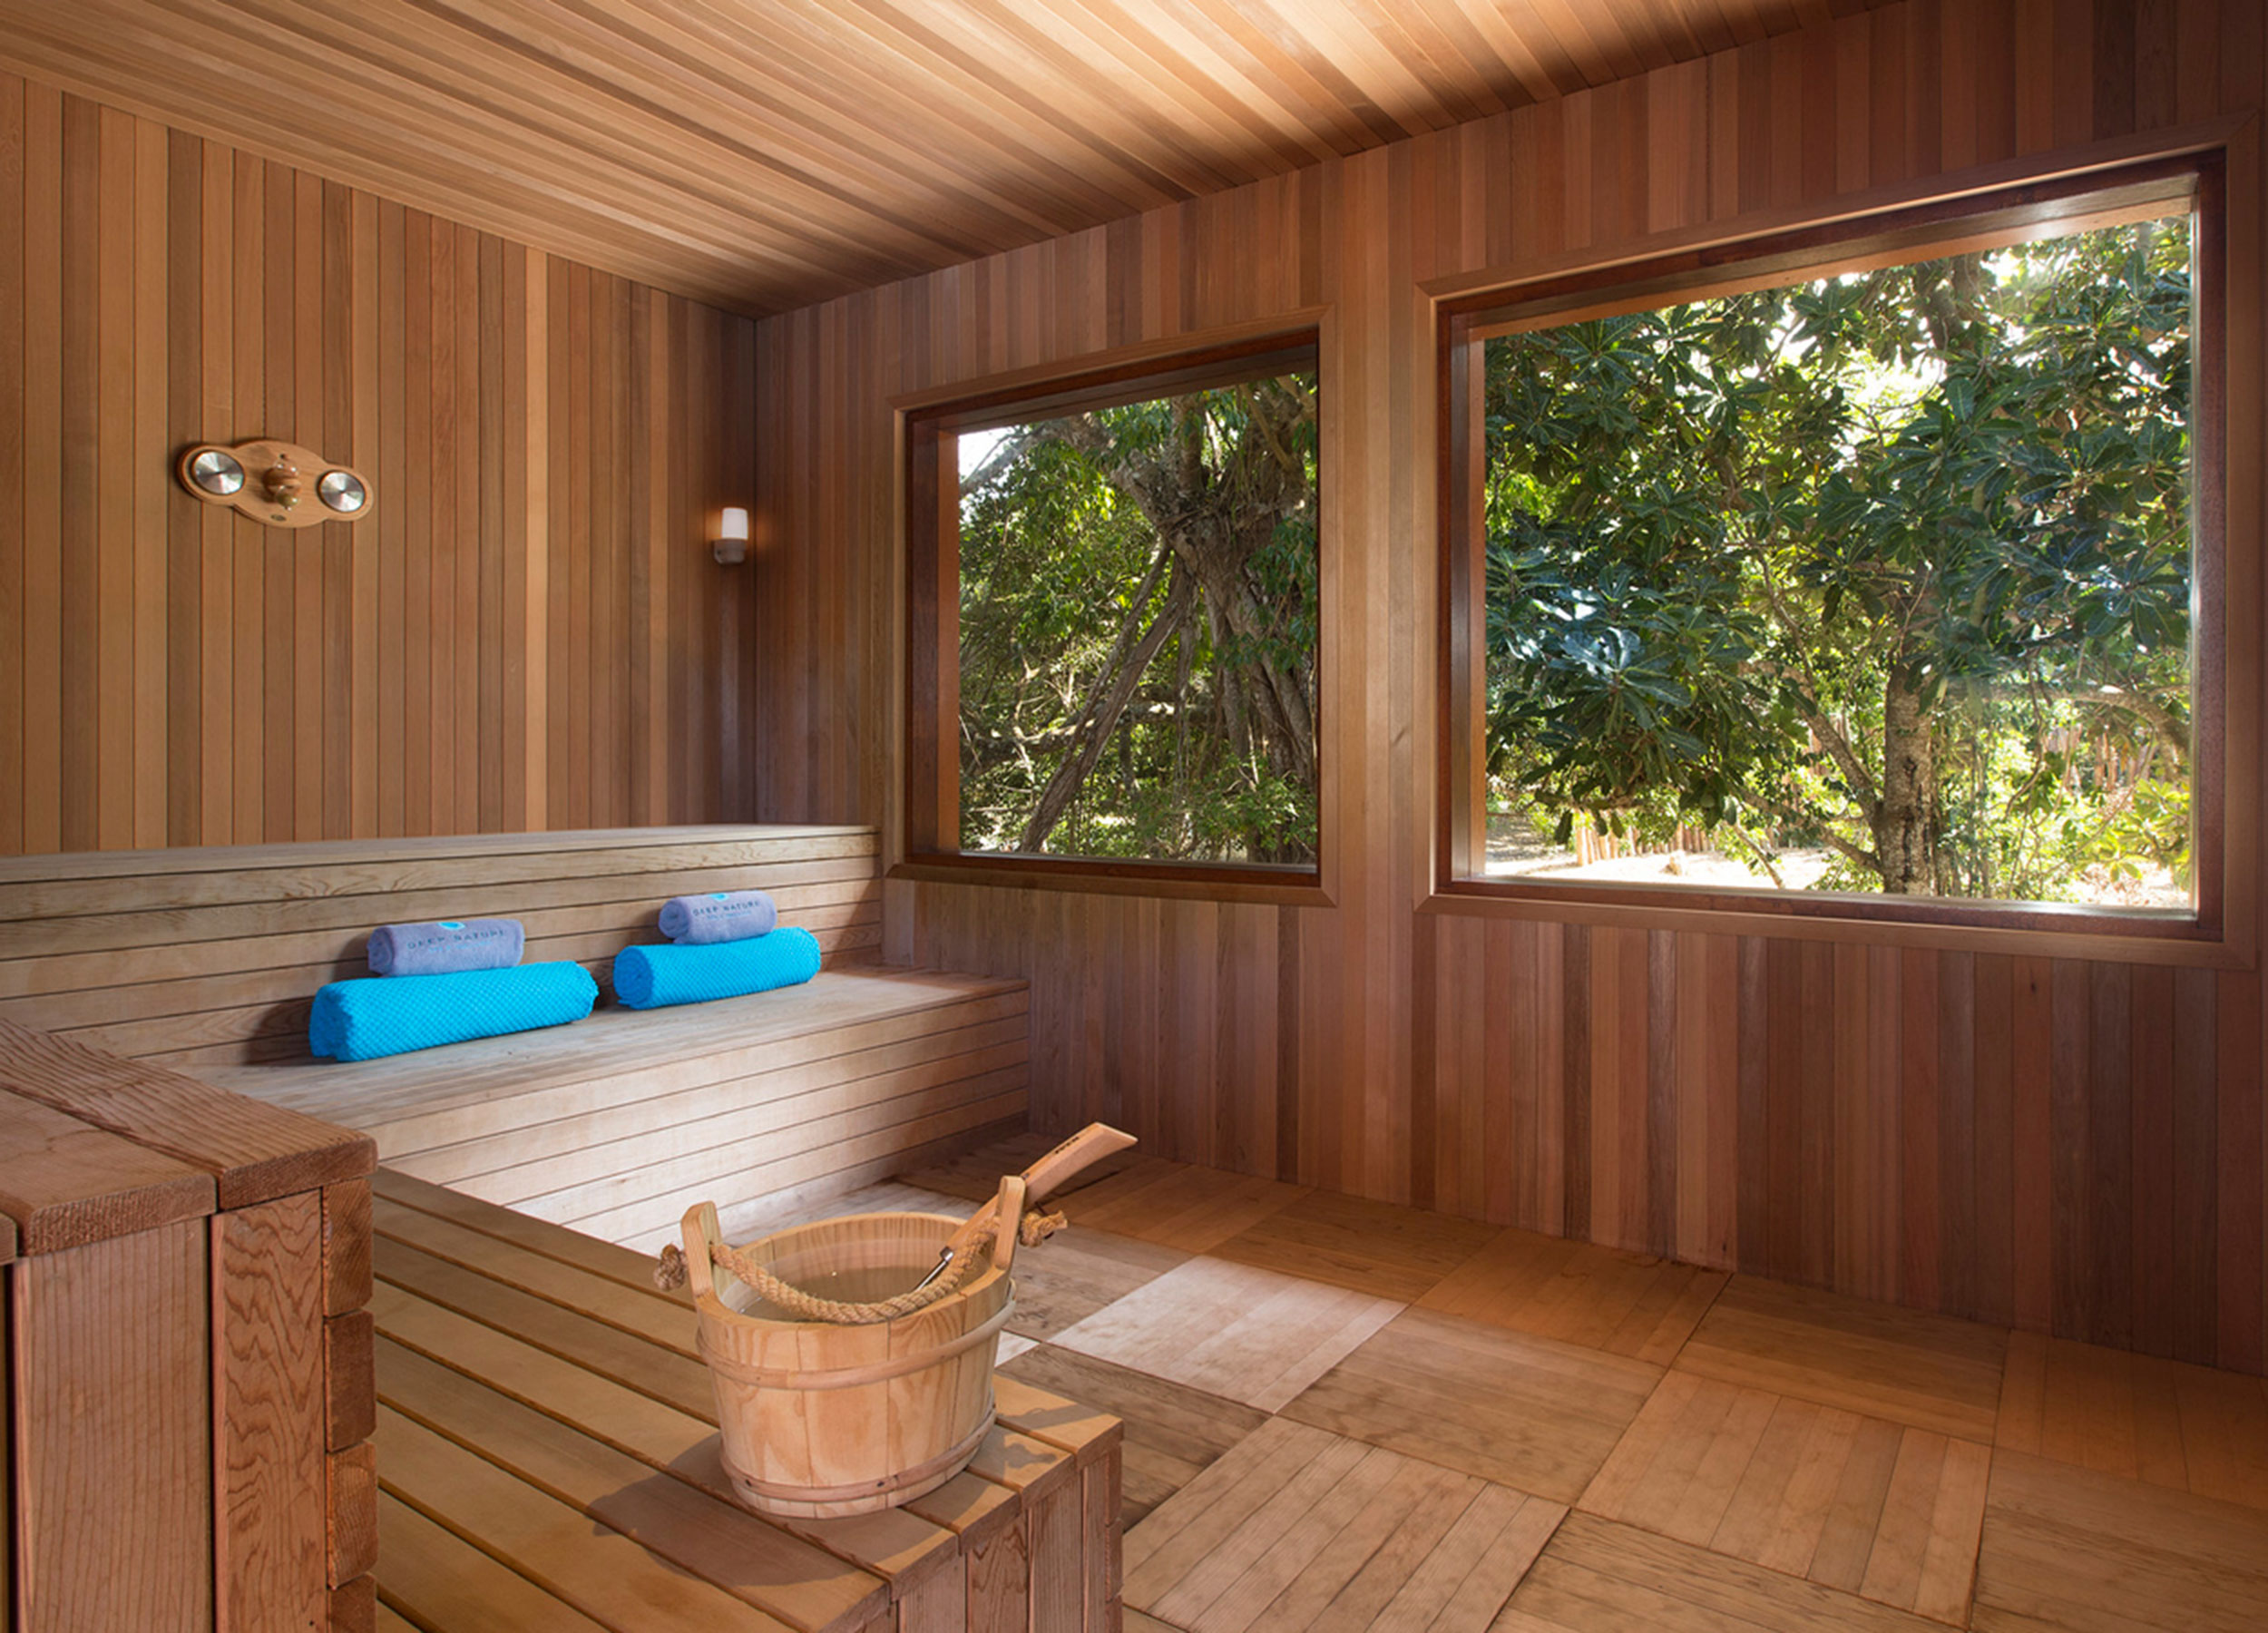 View into a sauna room overlooking trees outside its windows